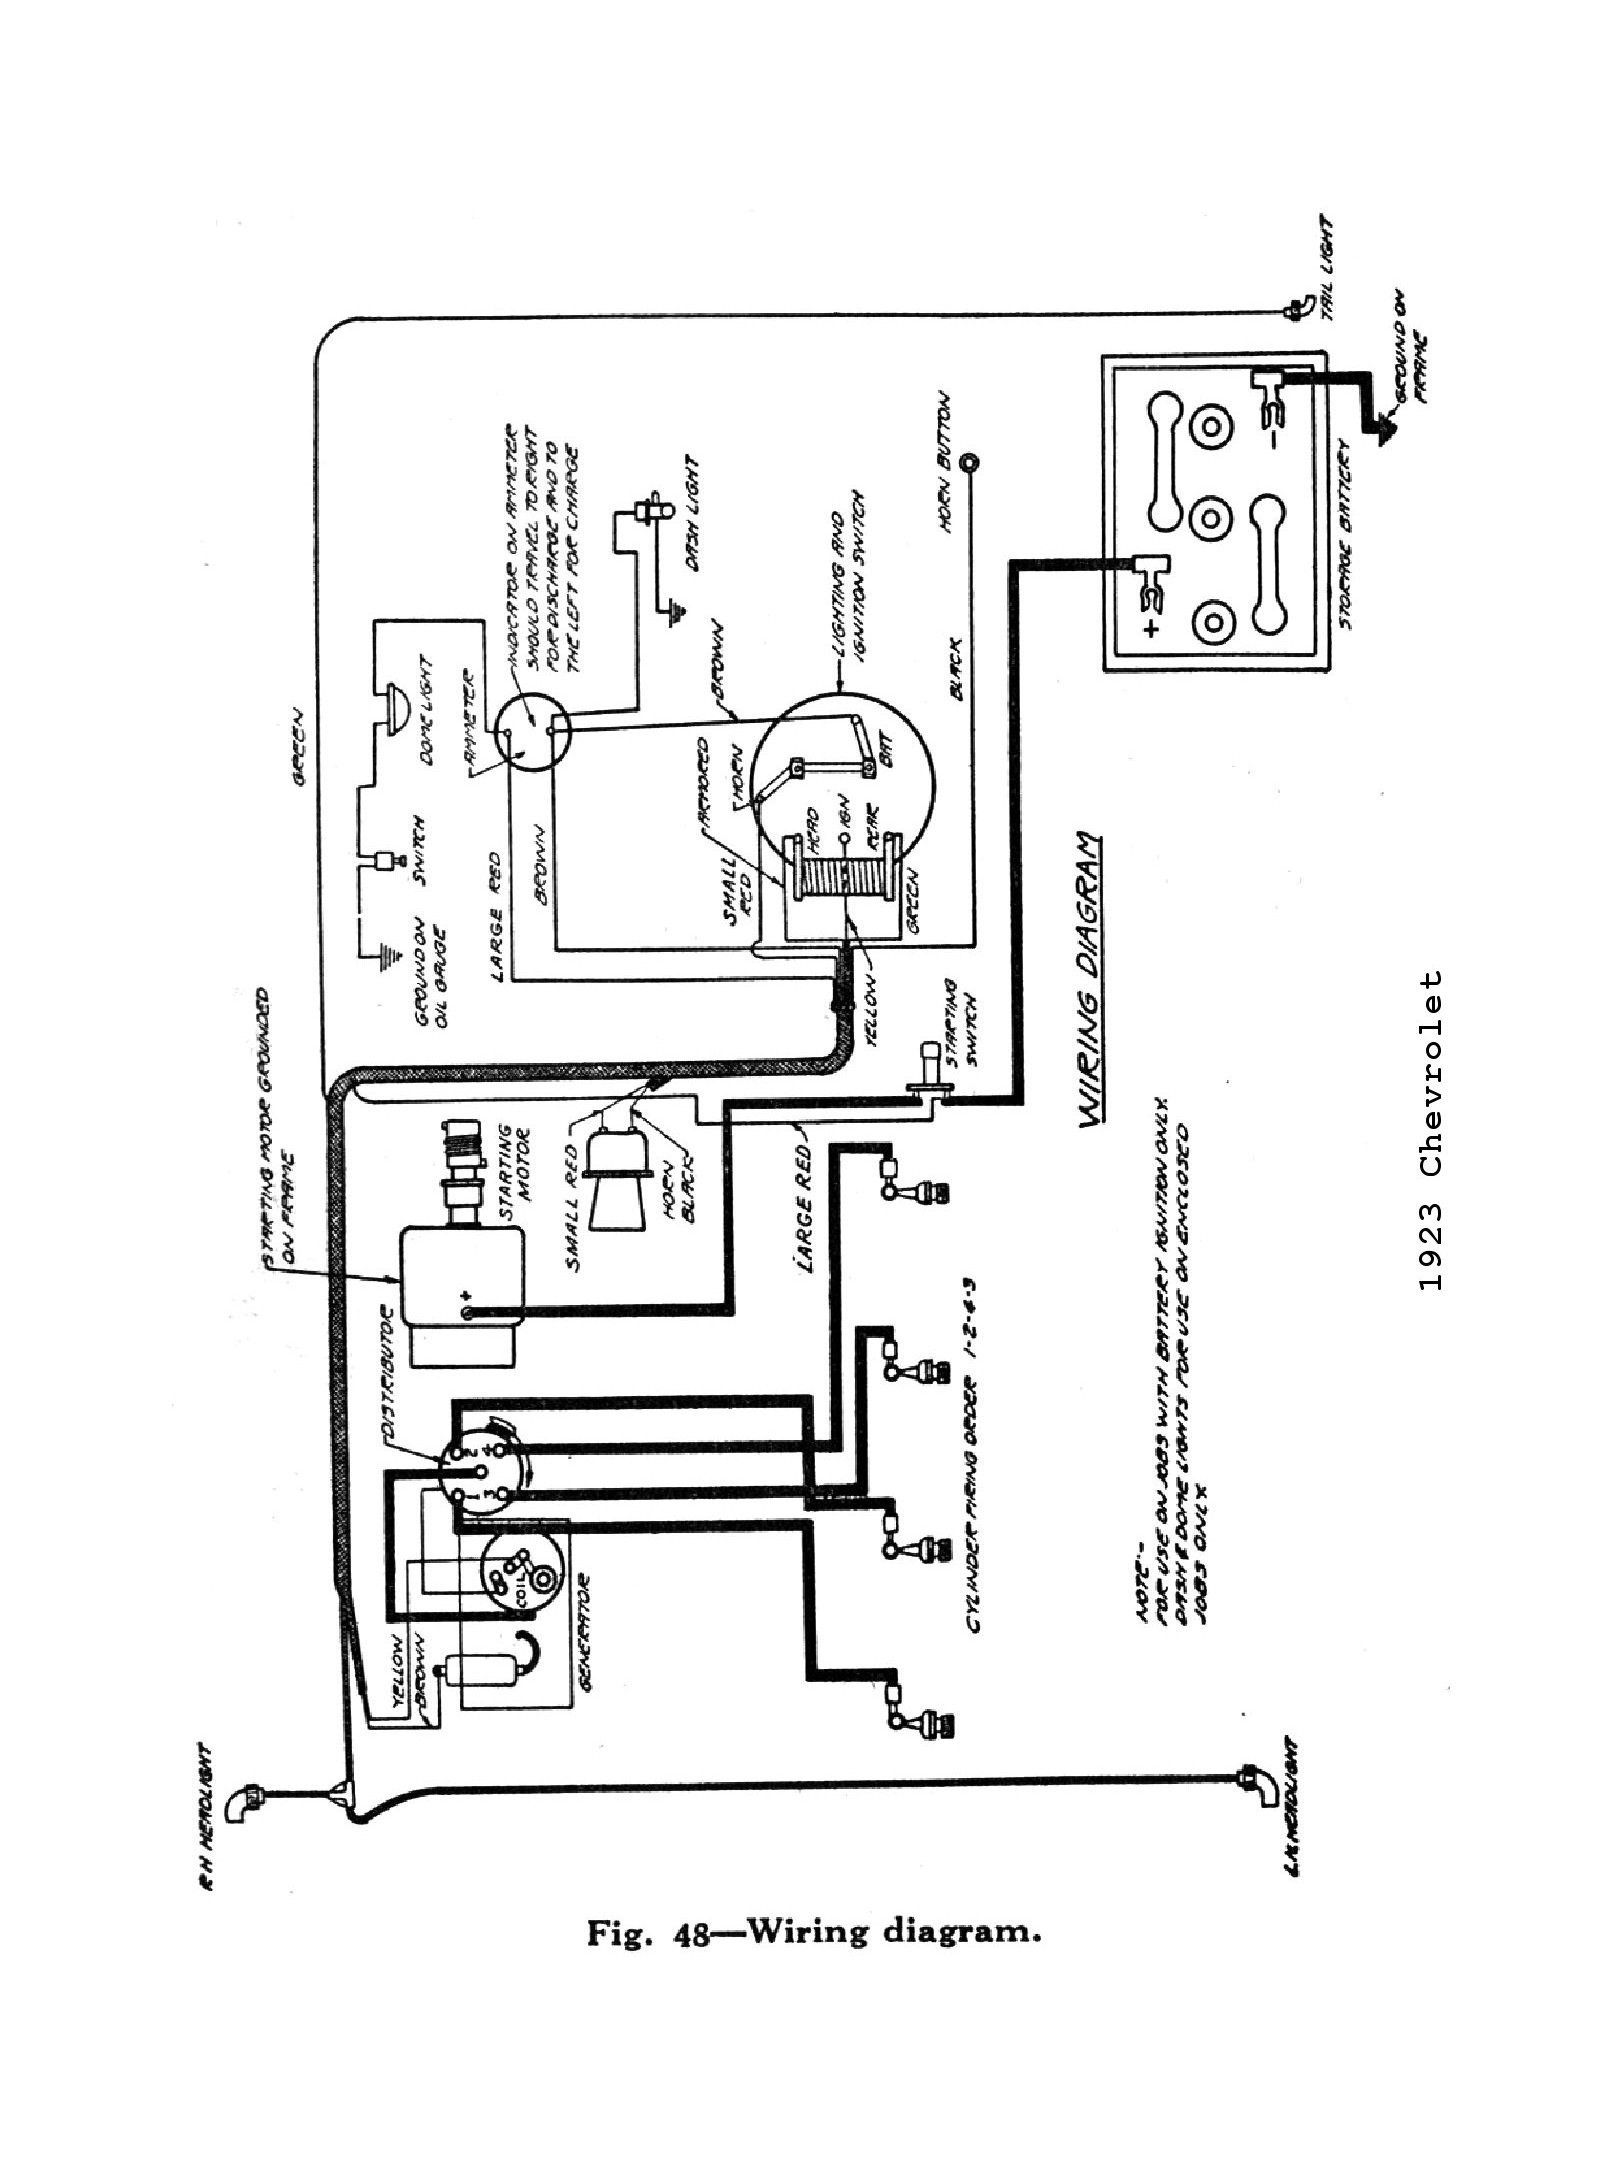 hight resolution of ignition circuit diagram for the 1955 nash 6 cylinder all modelswiring diagrams of 1957 hudson all